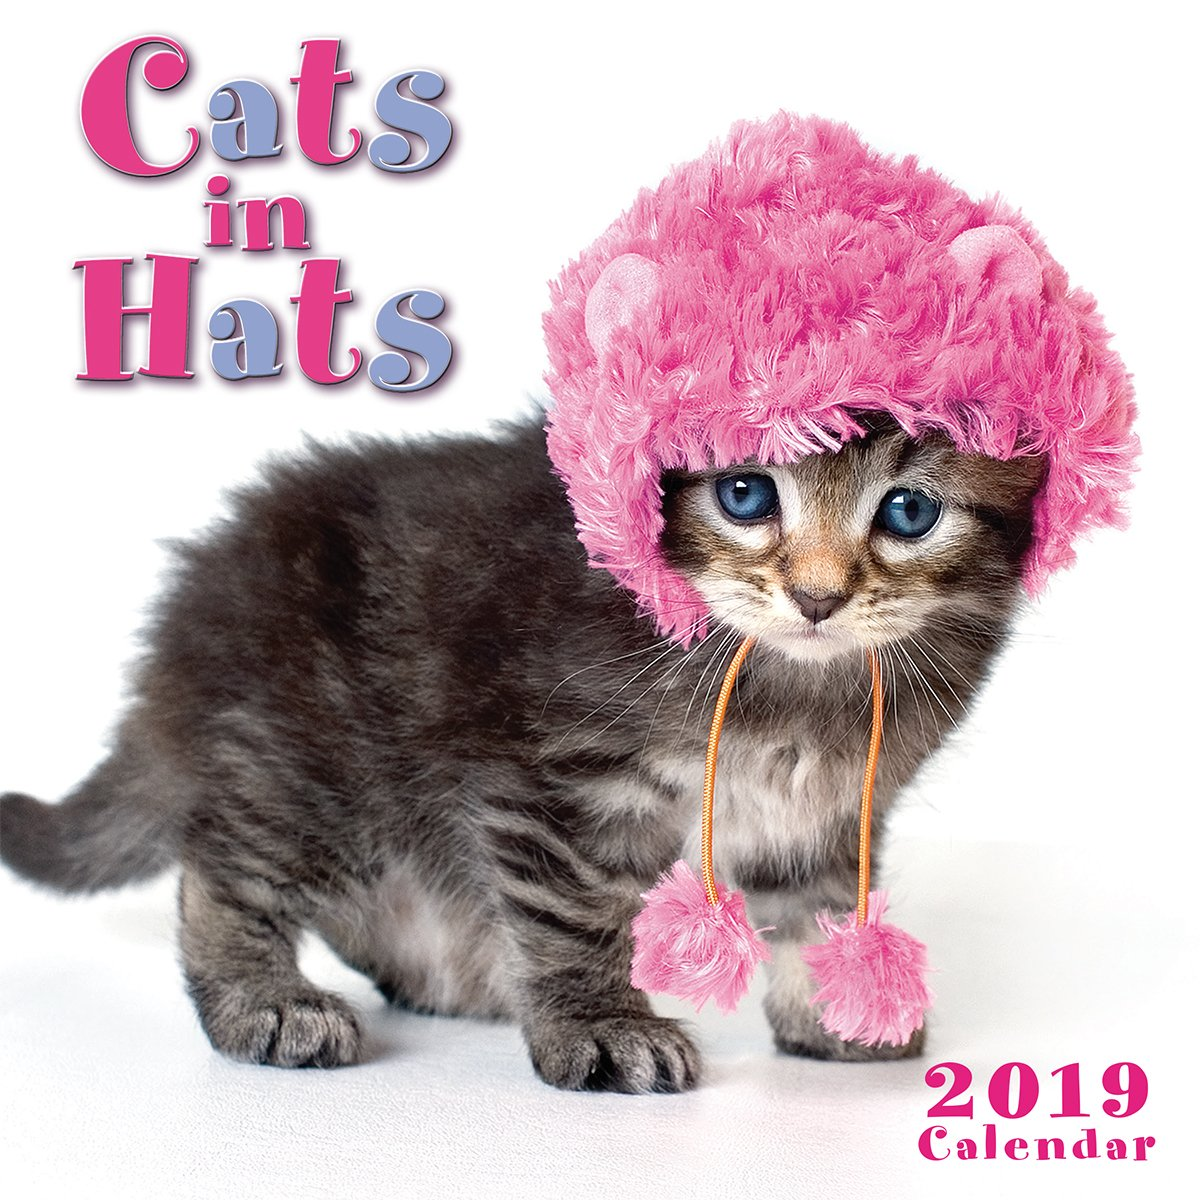 by Sellers Publishing 2019 Cats in Hats Mini Calendar 7x7 CS-0462